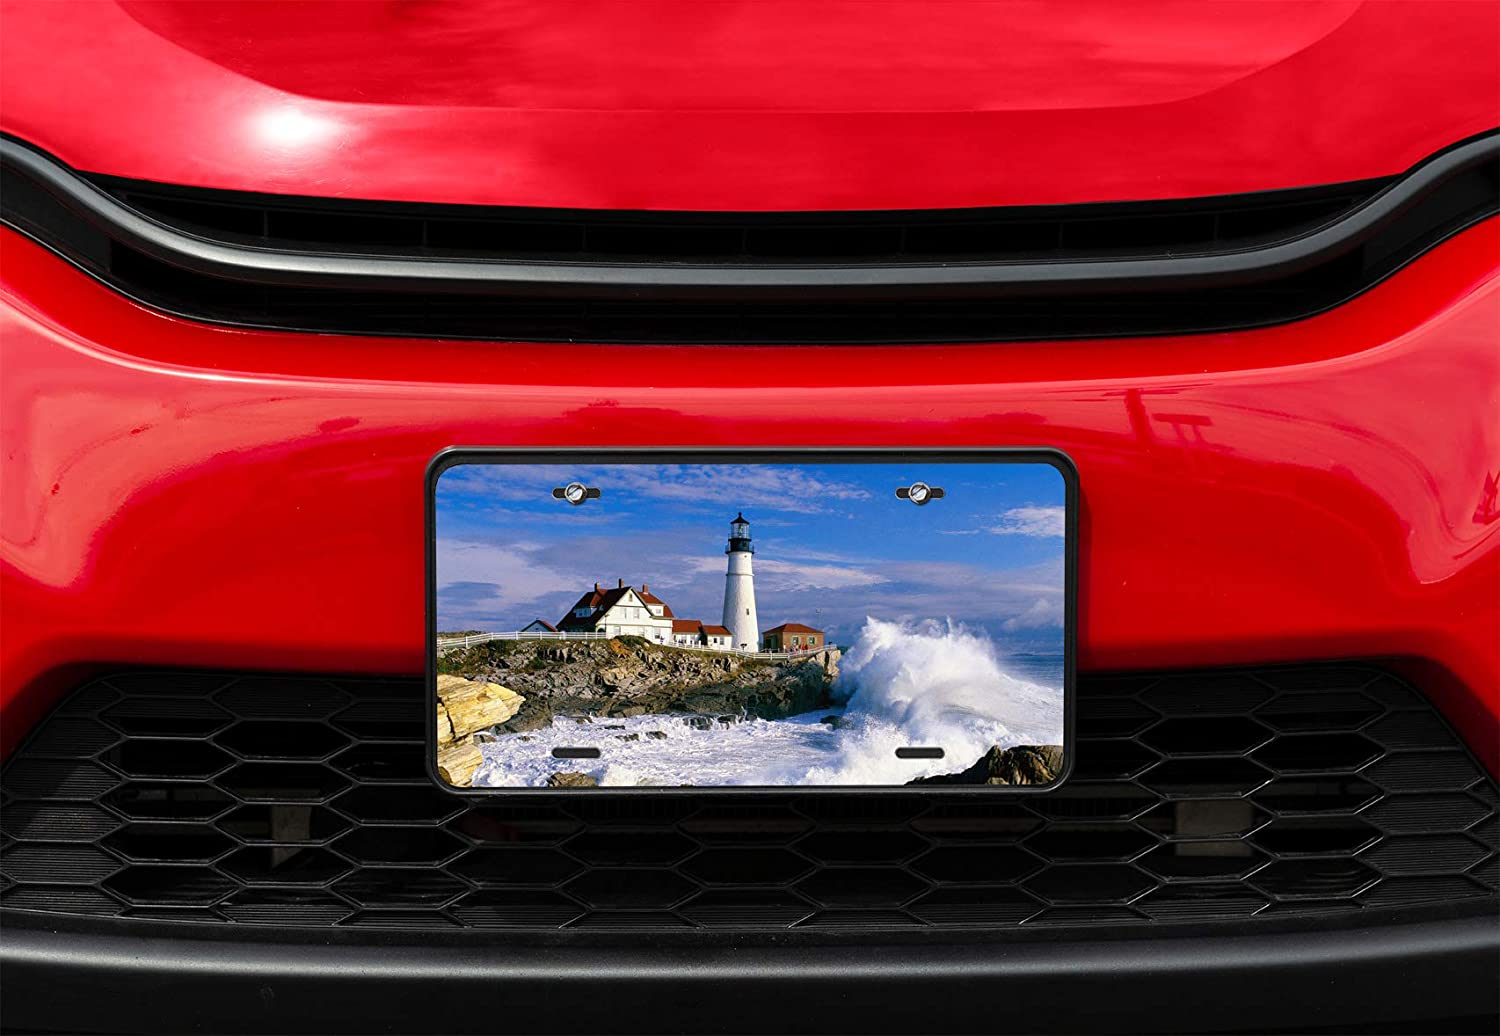 4 Holes Amcove License Plate Portland Head Lighthouse Decorative Car Front License Plate,Vanity Tag,Metal Car Plate,Aluminum Novelty License Plate,6 X 12 Inch